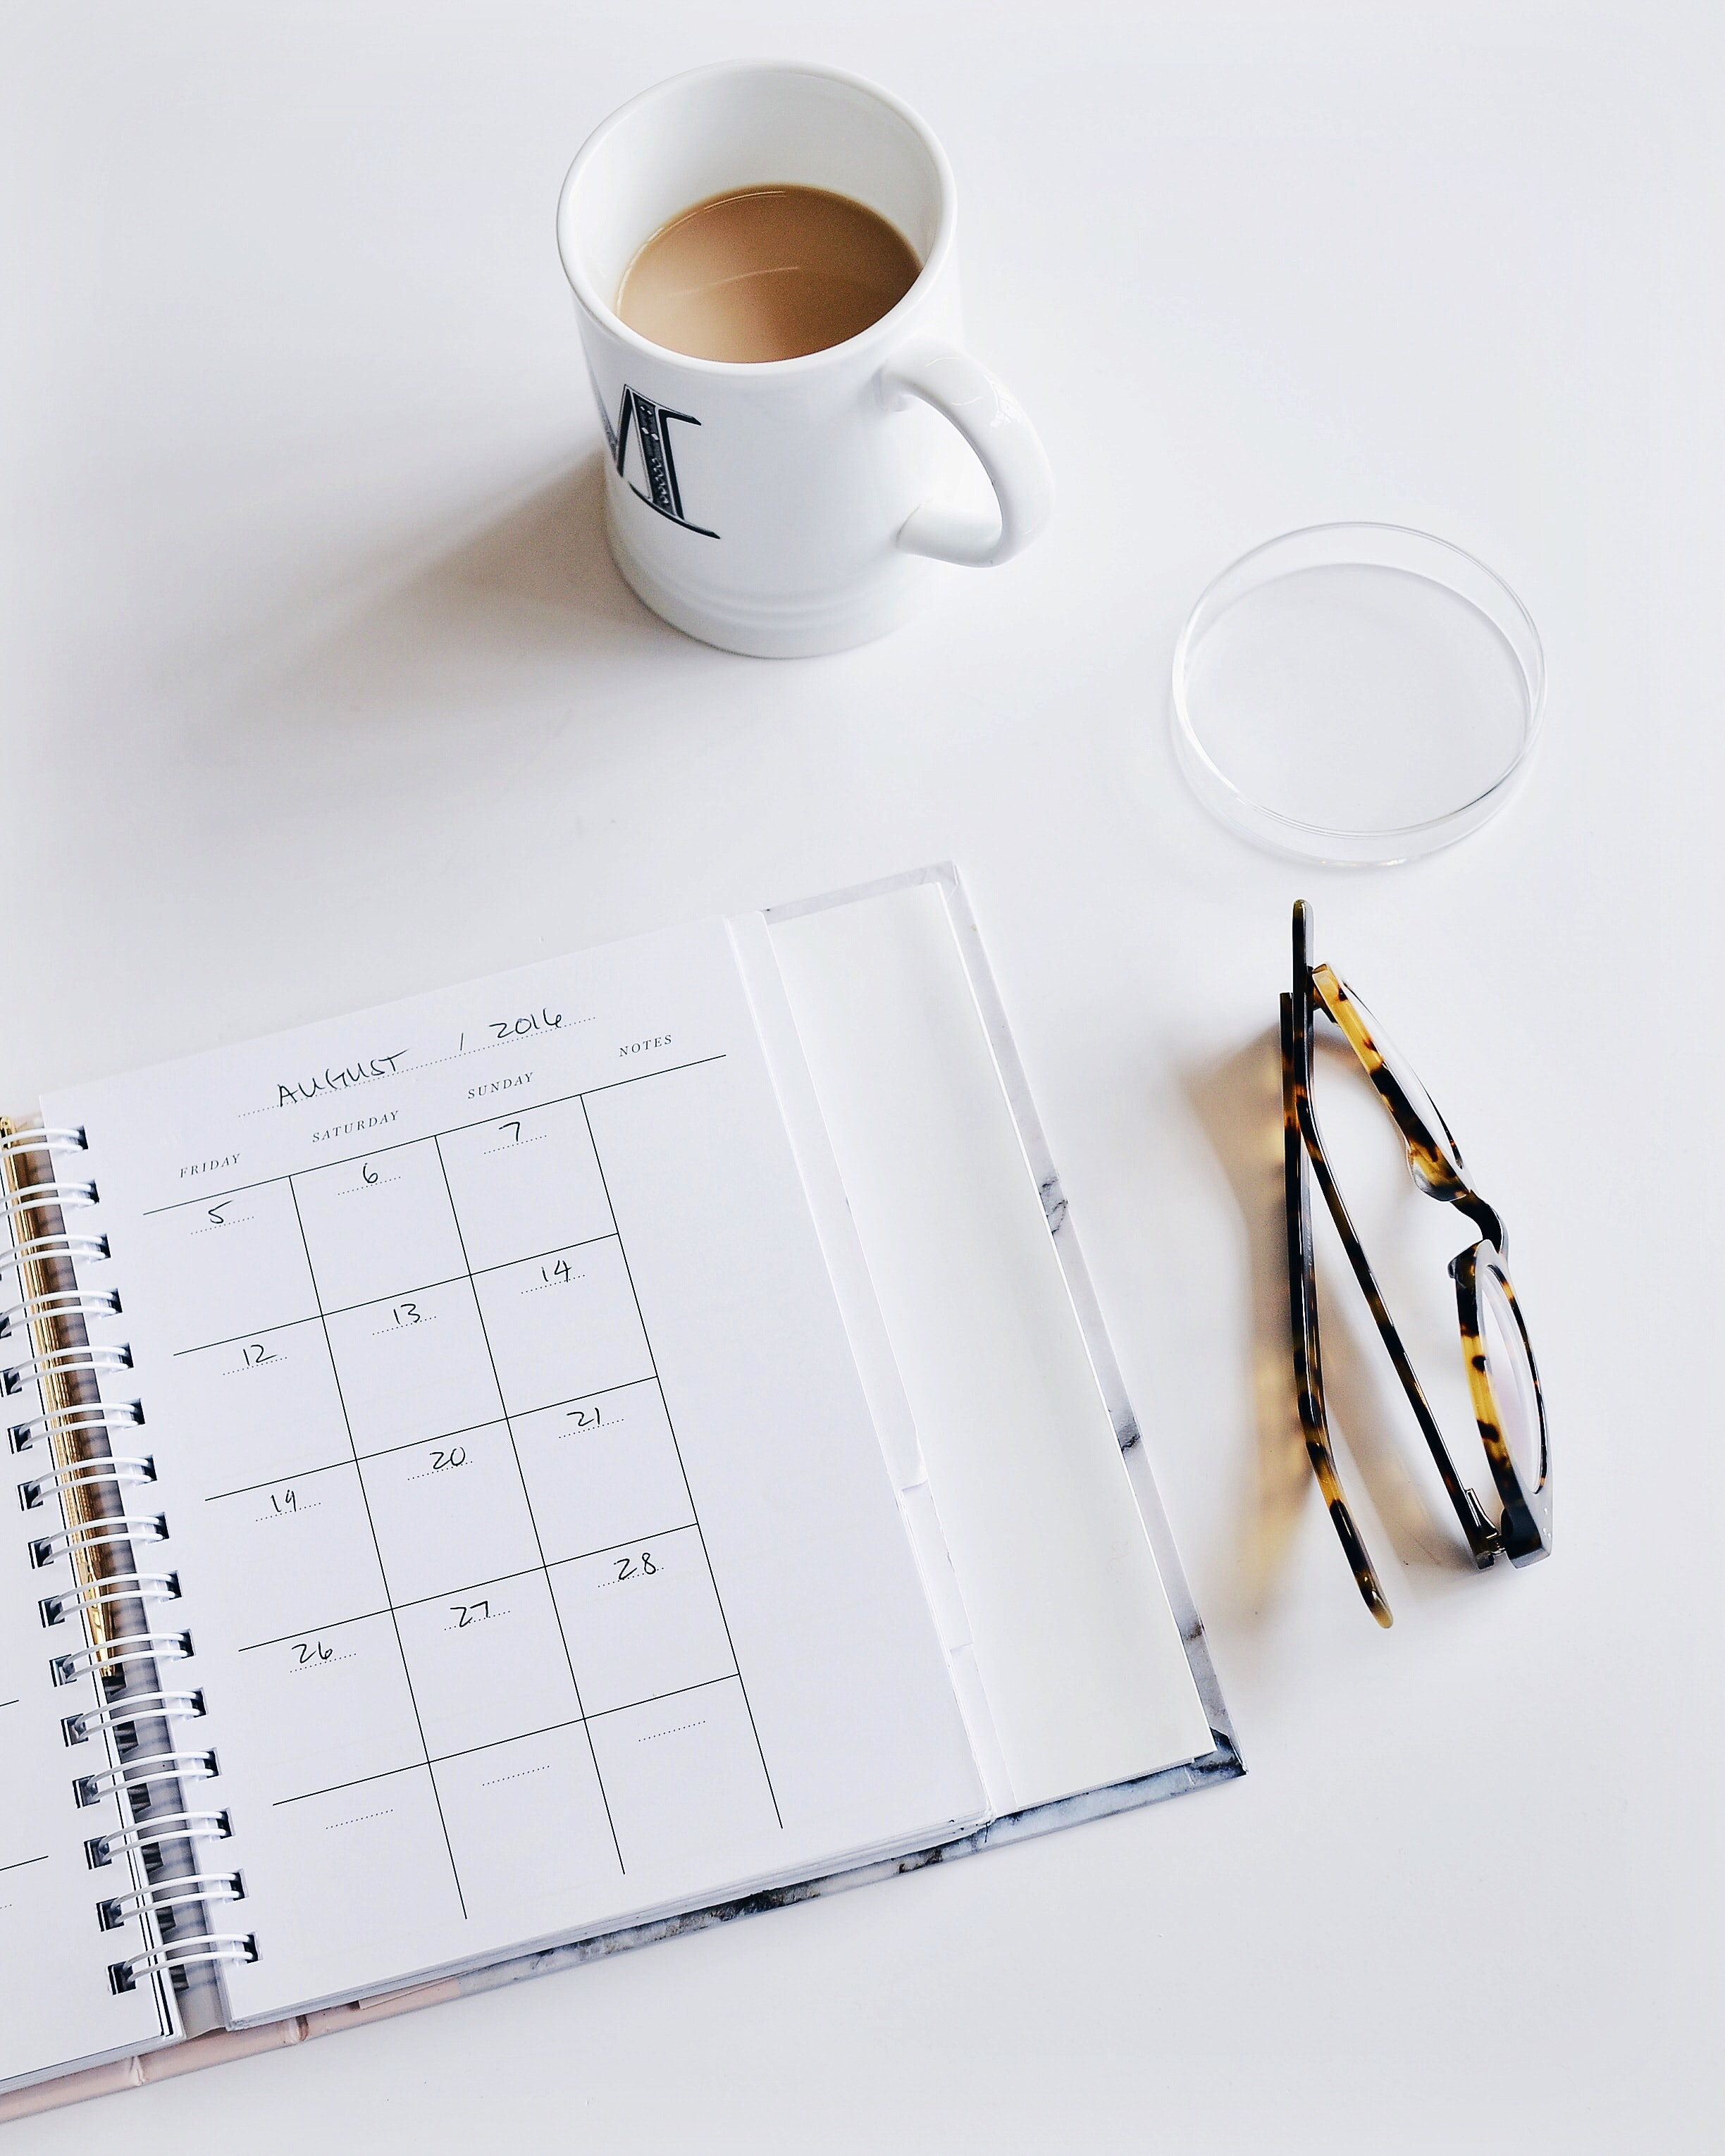 A calendar book, pair of glasses and cup of coffee on a white surface.